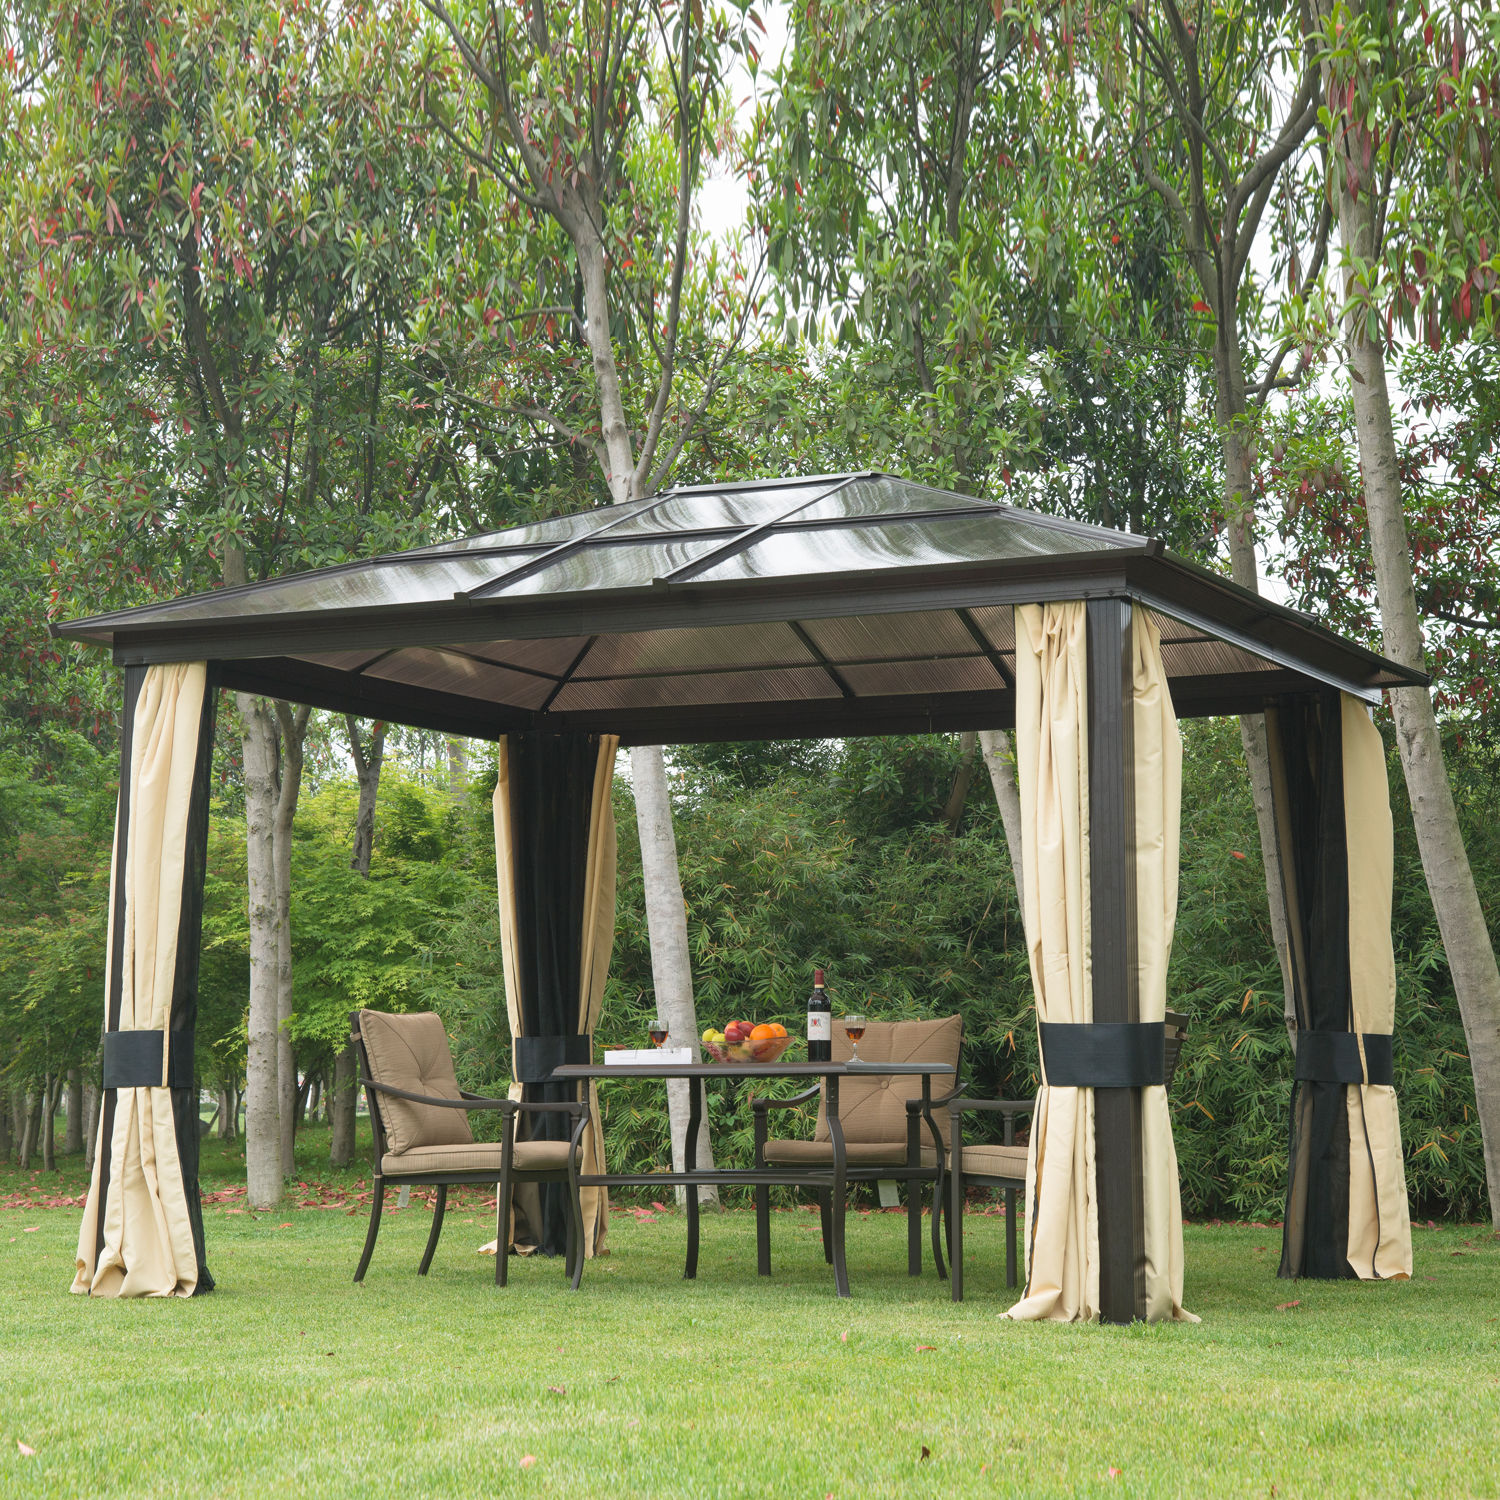 12u0027x10u0027 outdoor patio canopy party gazebo shelter hardtop w/ mesh and KMTVWAO